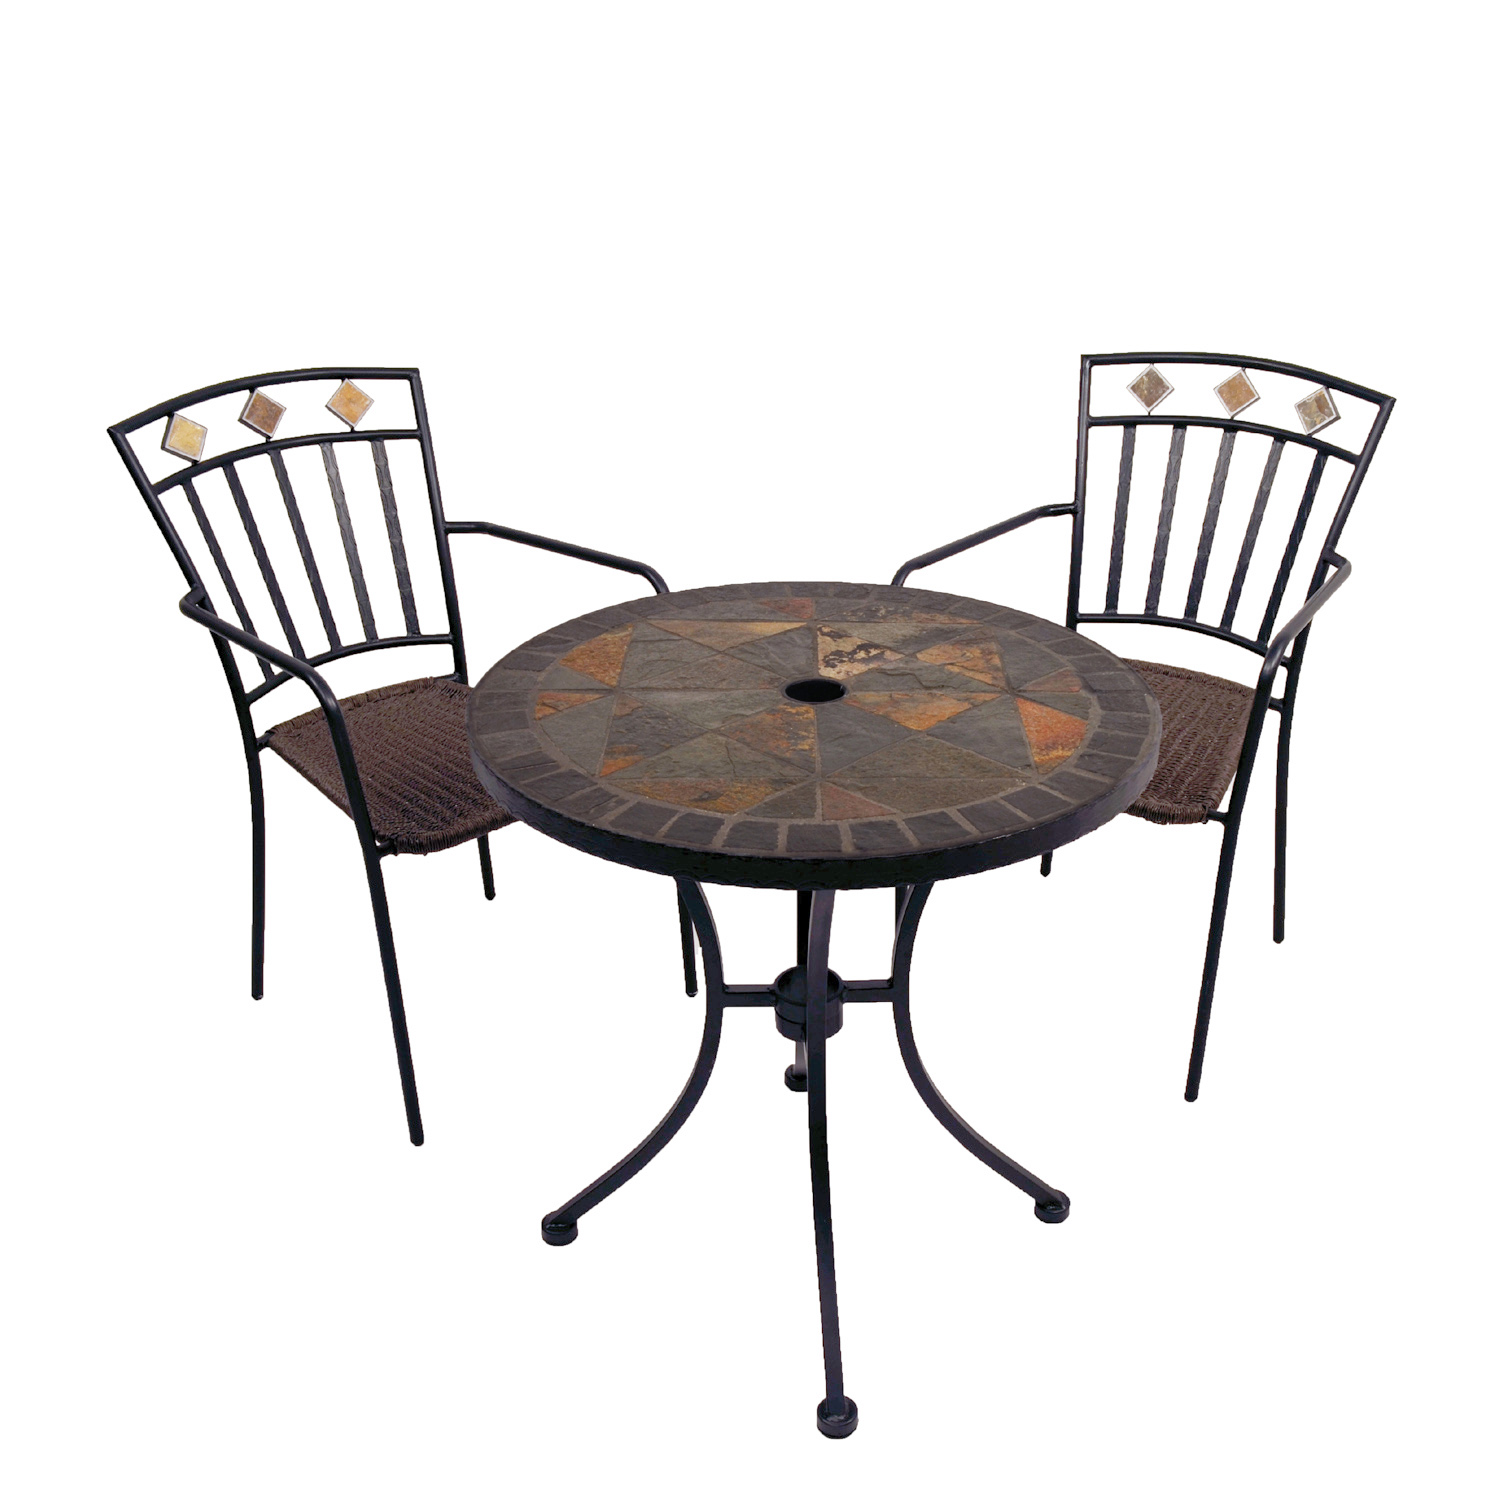 Europa Stone Tobarra Bistro Table With 2 Malaga Chair Set - Ruby's Garden Boutique